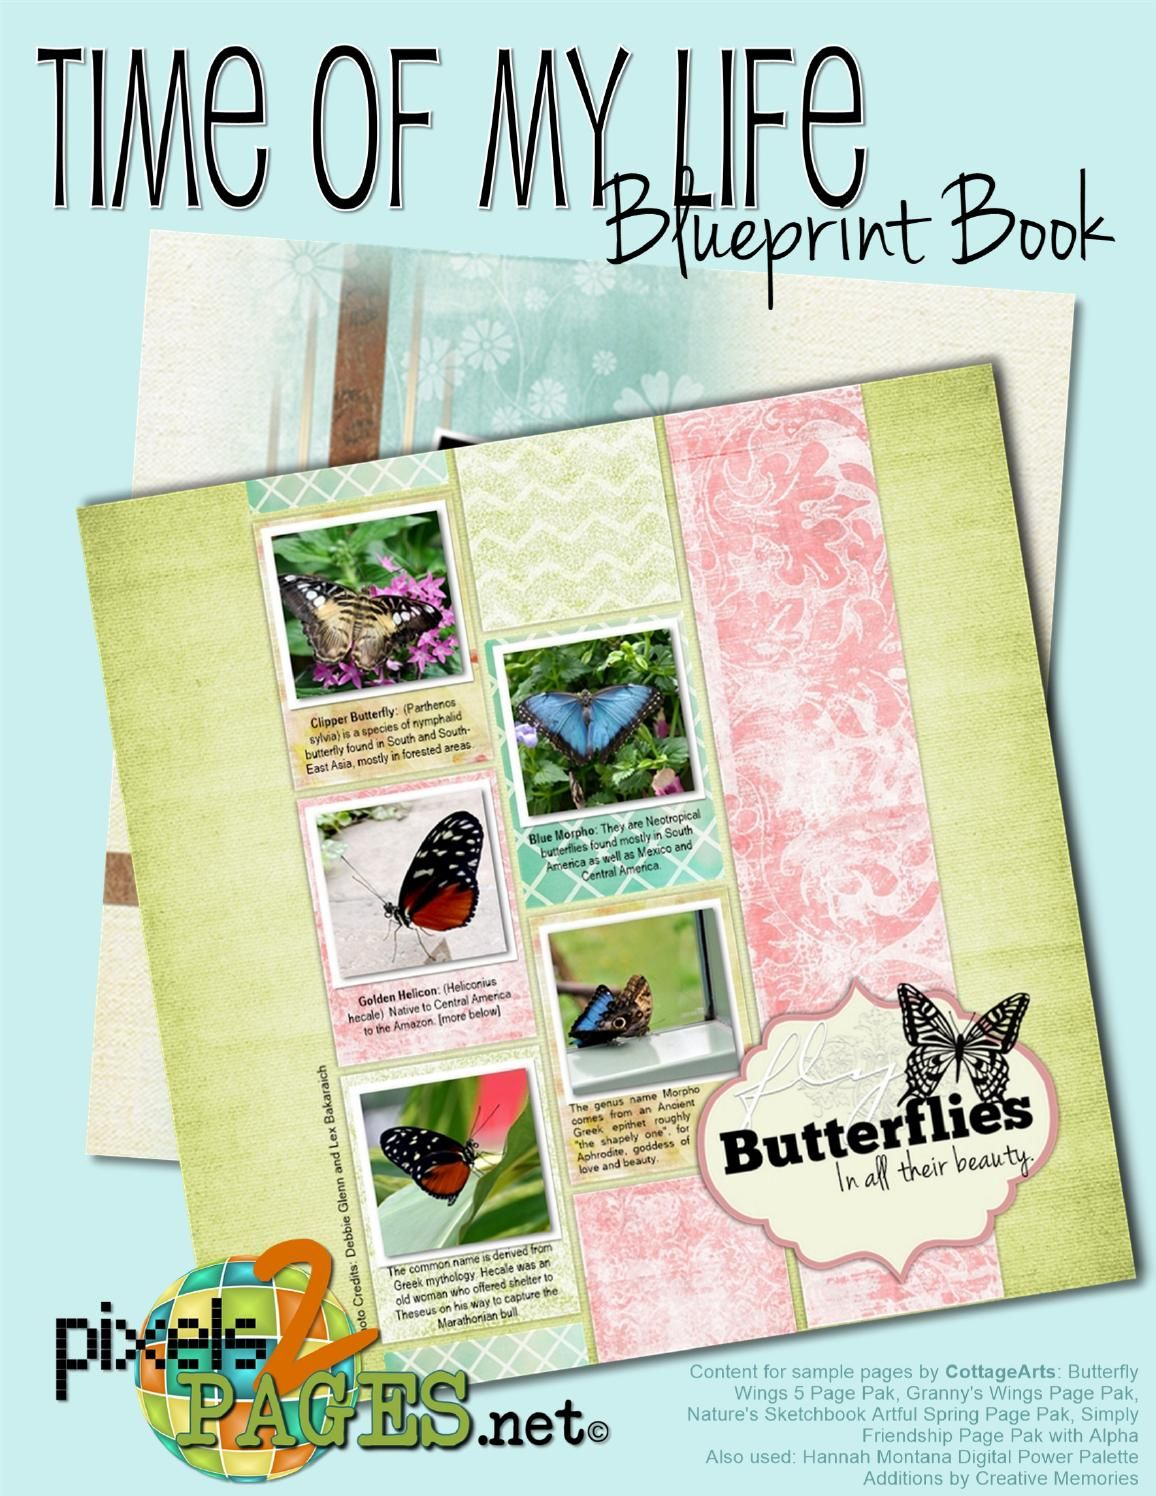 Time of my life blueprint book travel album scrapbooking ideas time of my life blueprint book get a sneak peak at the this blueprint book which was designed as a travel album but is perfect for almost any occasion malvernweather Gallery